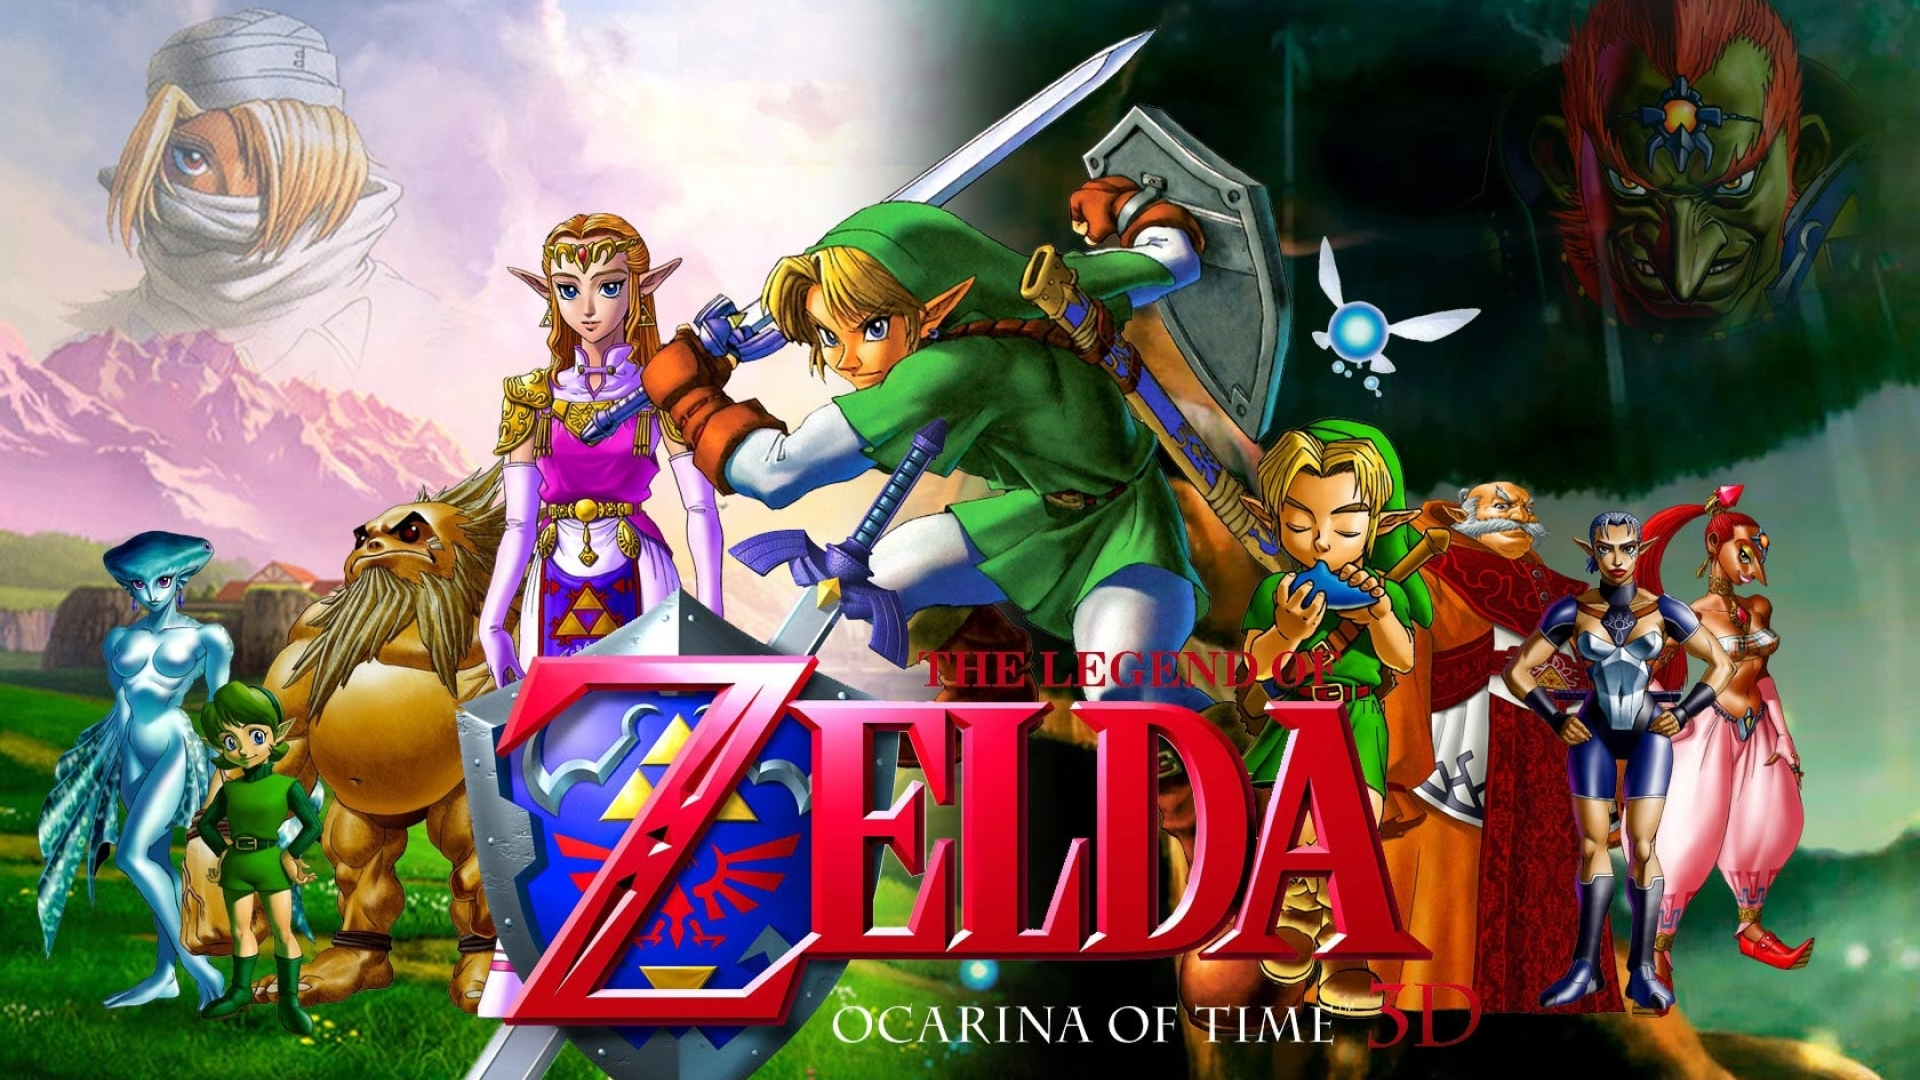 1920x1080 The Legend Of Zelda Characters Faces 1080p Laptop Full